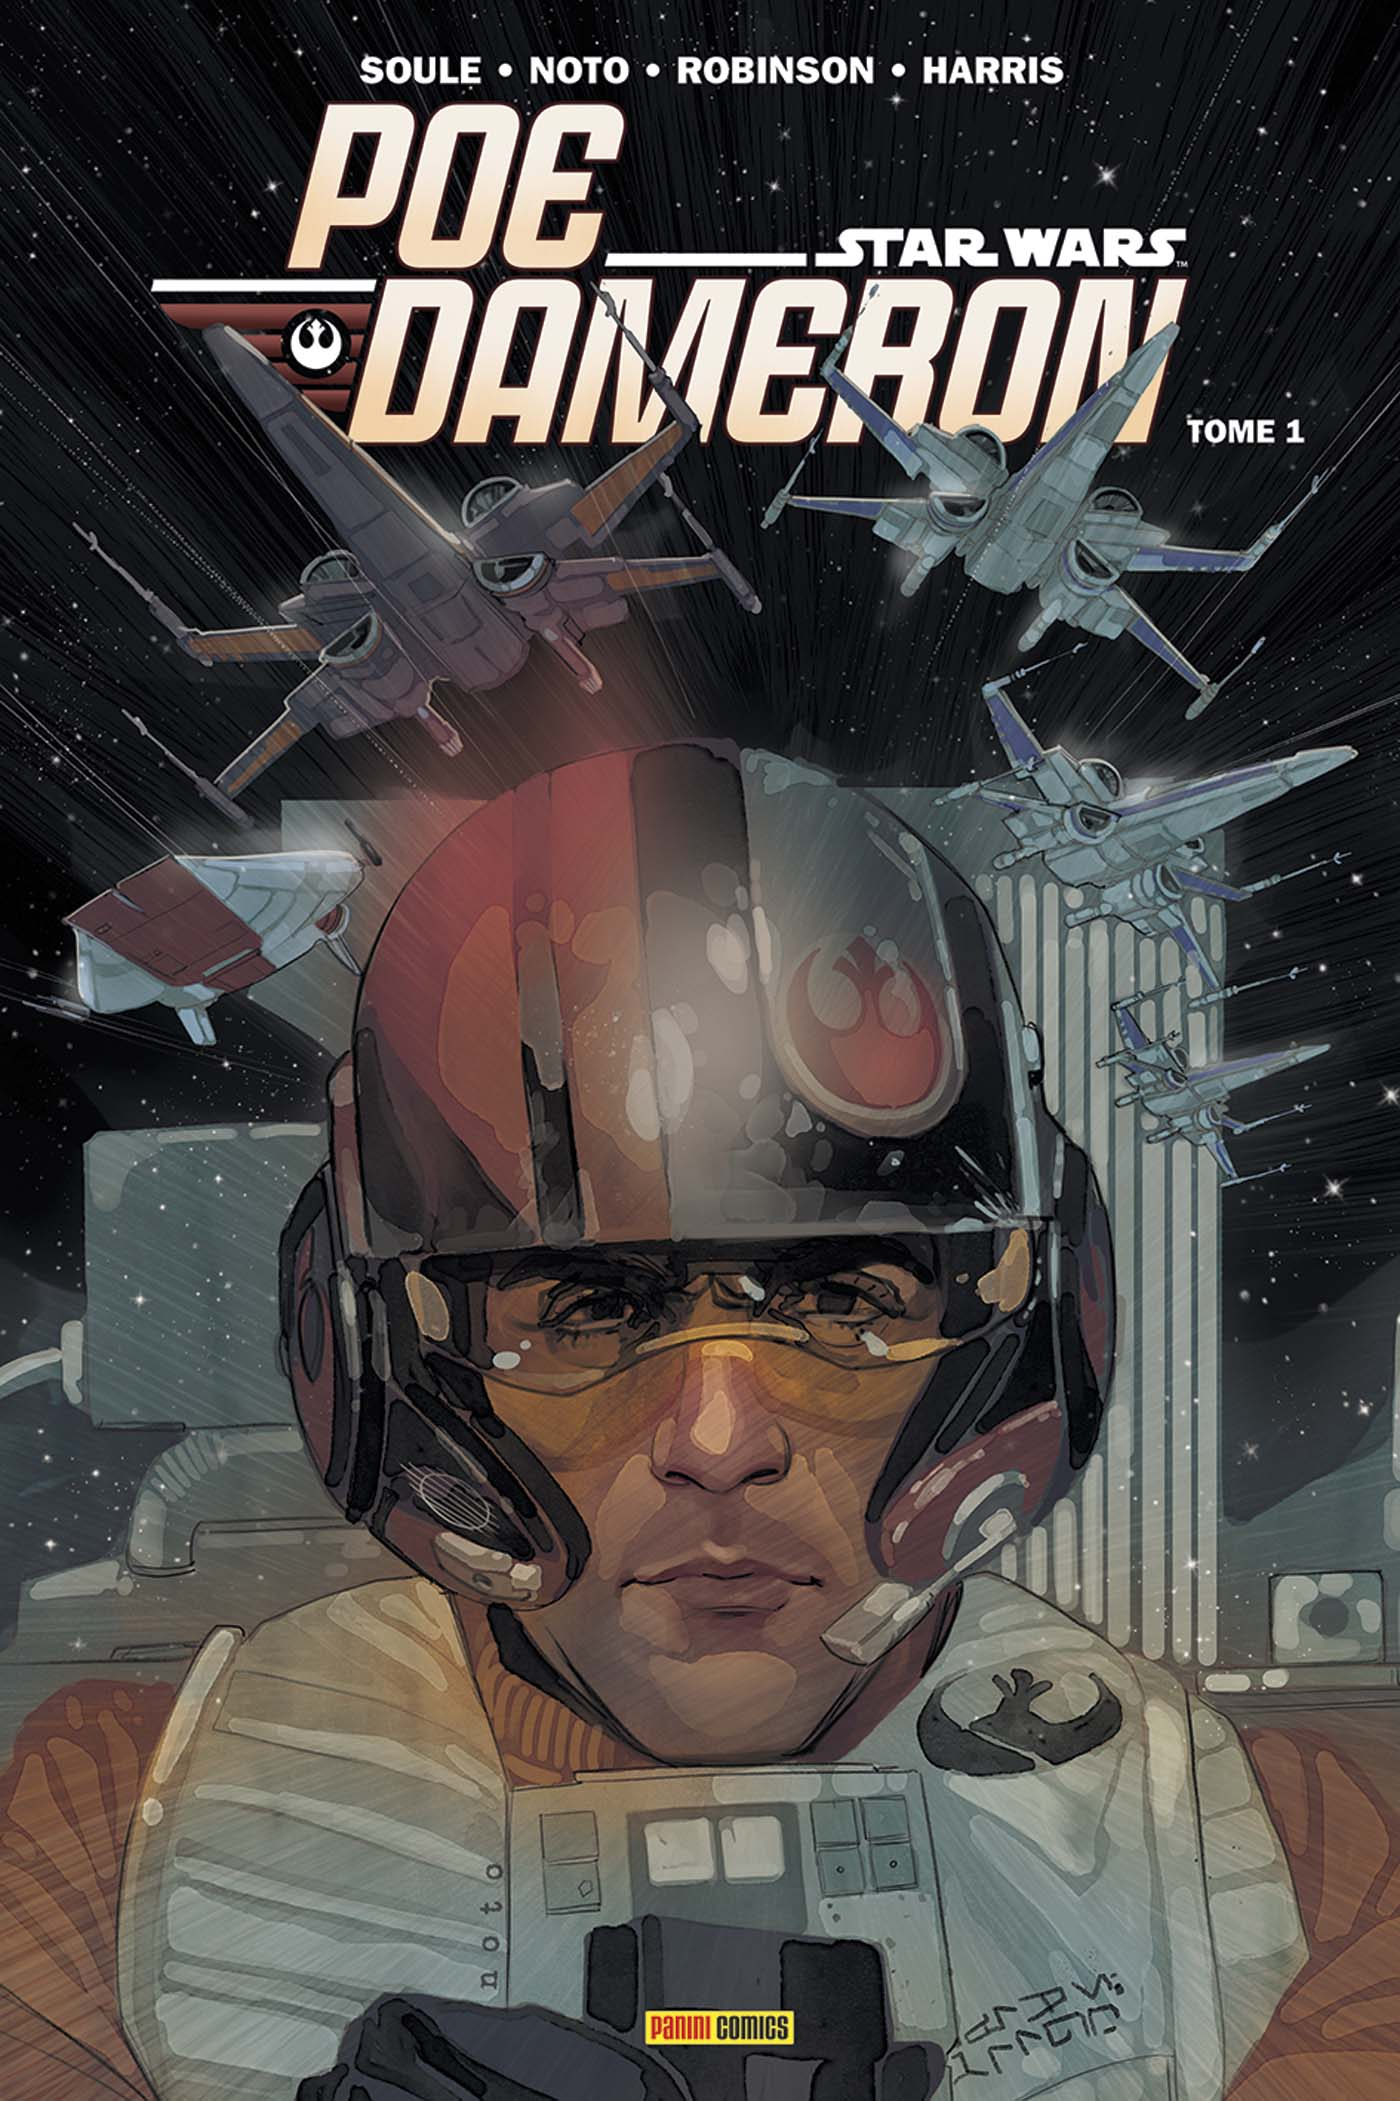 100% Star Wars Poe Daùeron 1 Couverture